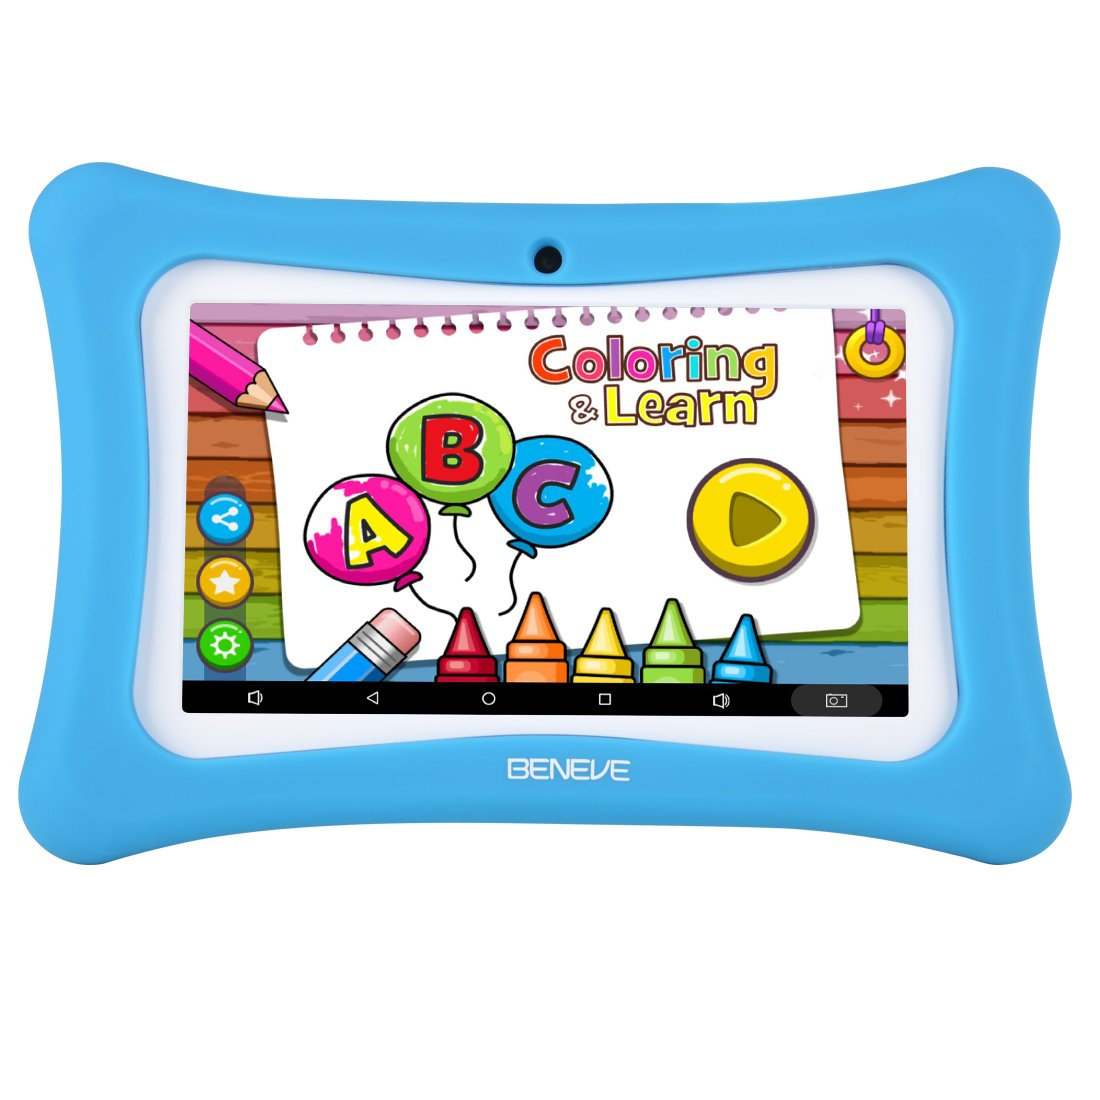 Kids Tablet Android 7.1, 7 Inch, HD Display, Quad Core, Children Tablet, 1GB RAM + 8GB ROM, with WIFI, Dual Camera, Bluetooth, Educational, Multi Touch Screen Kid Model, Parental Control (M blue 03) …